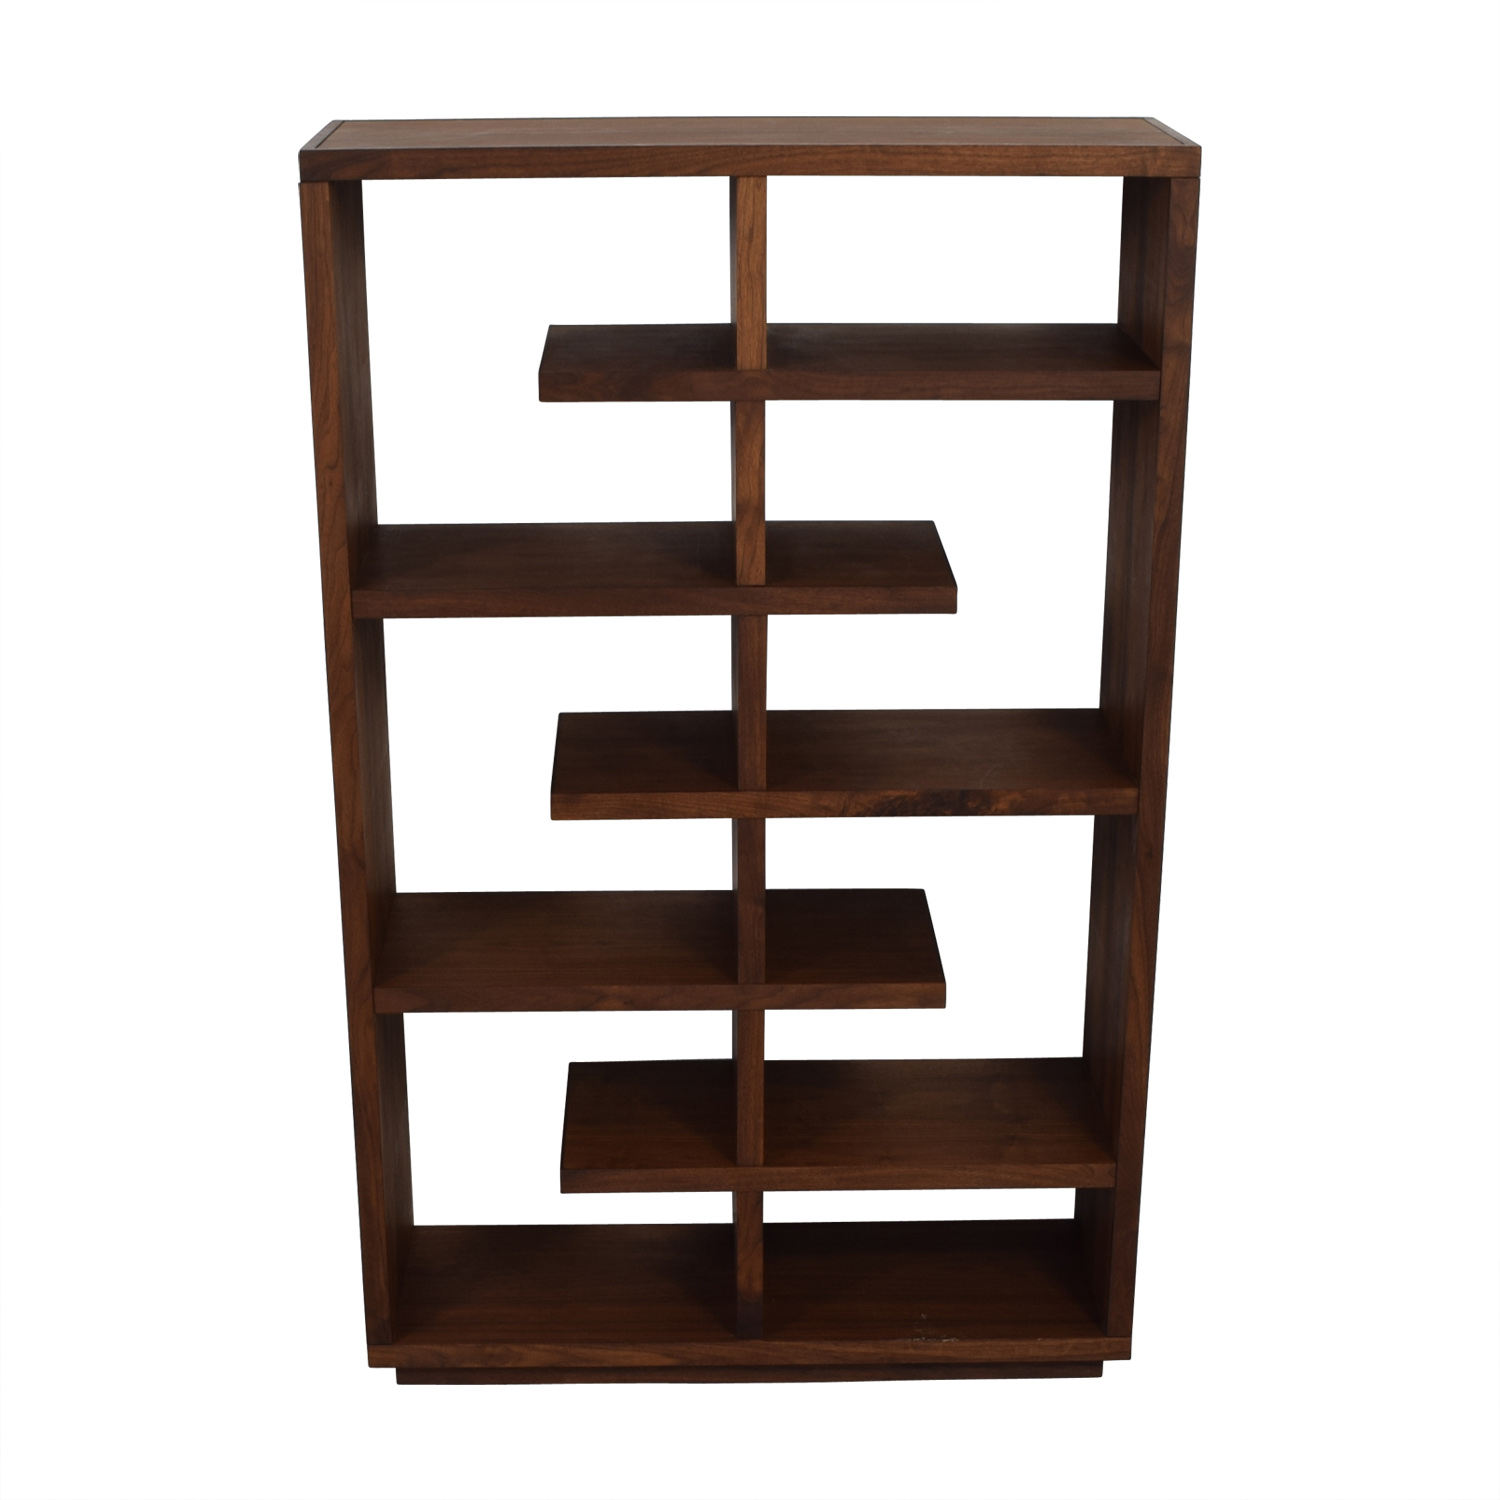 Shop Crate & Barrel Crate & Barrel Elevate Walnut Bookcase